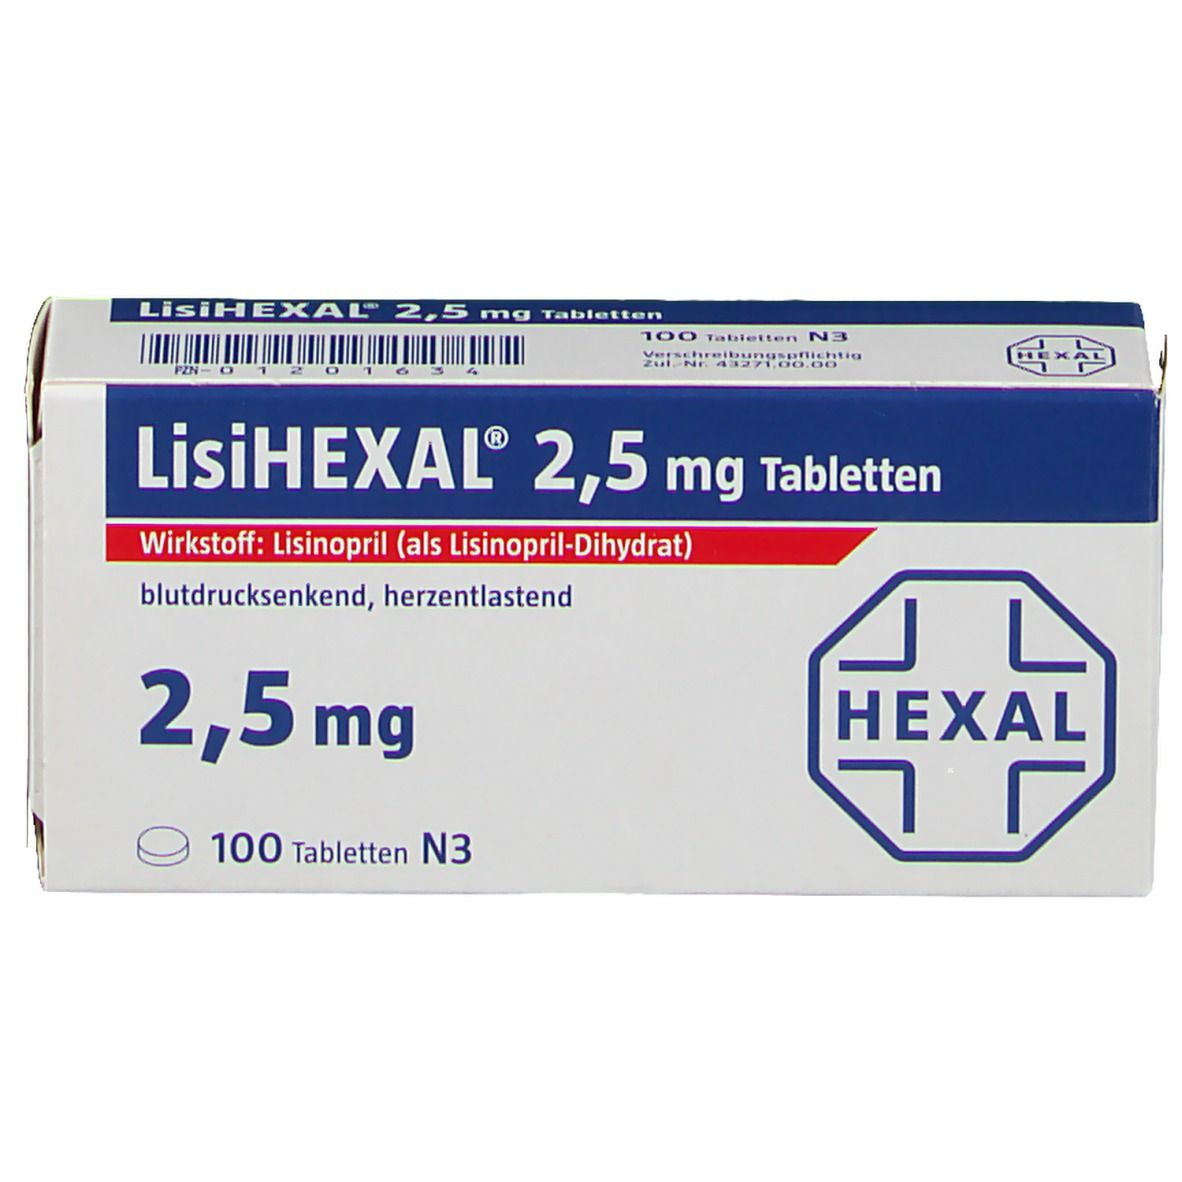 LisiHEXAL® 2,5 mg Tabletten